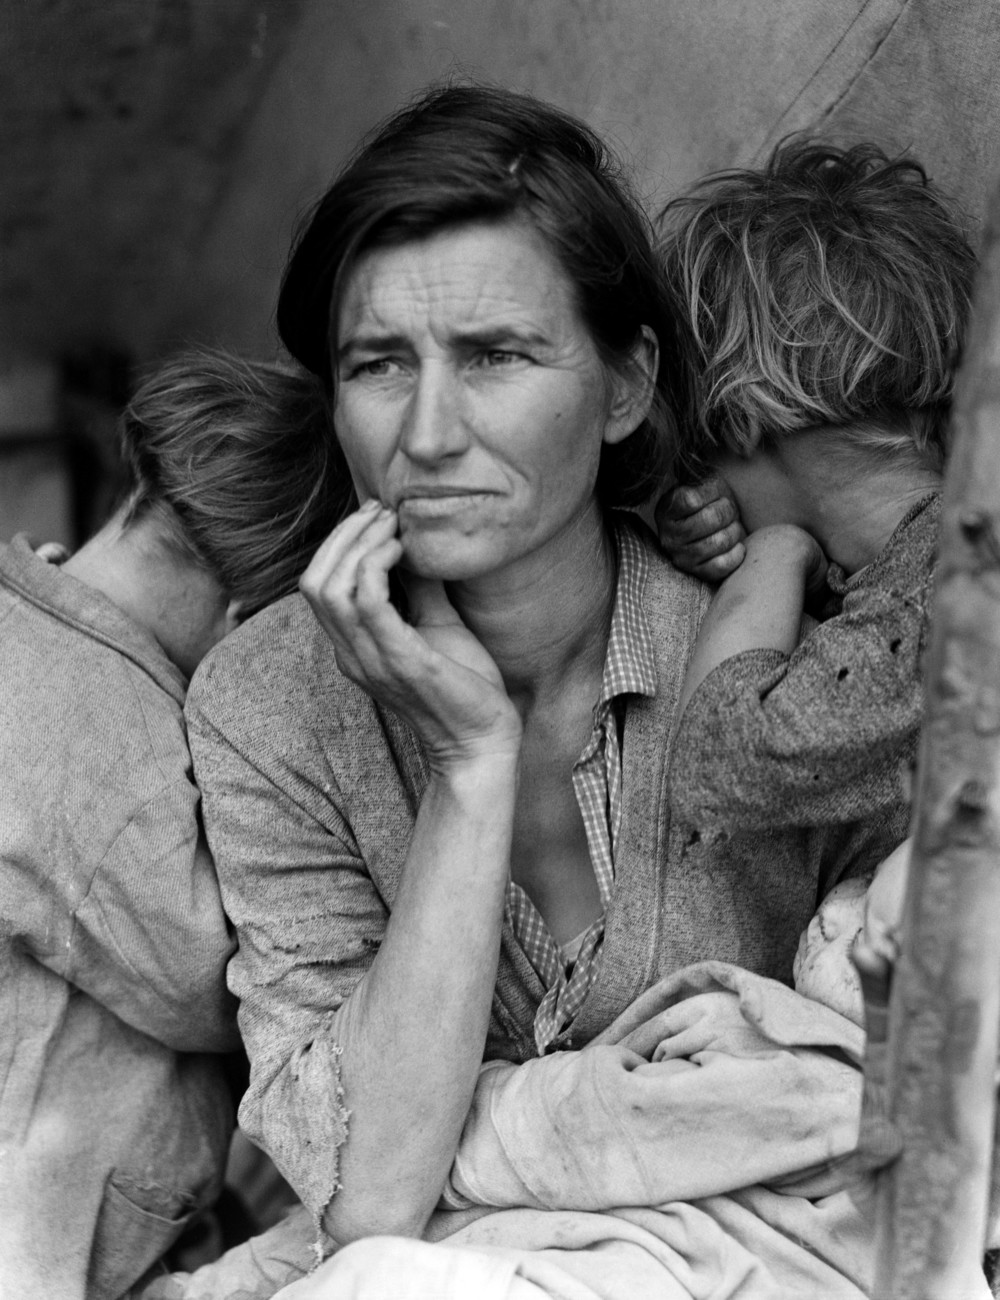 Dorothea Lange's photograph of Florence Thompson as the 'Migrant Mother' is a particularly well-known image taken from her work on the FSA project.